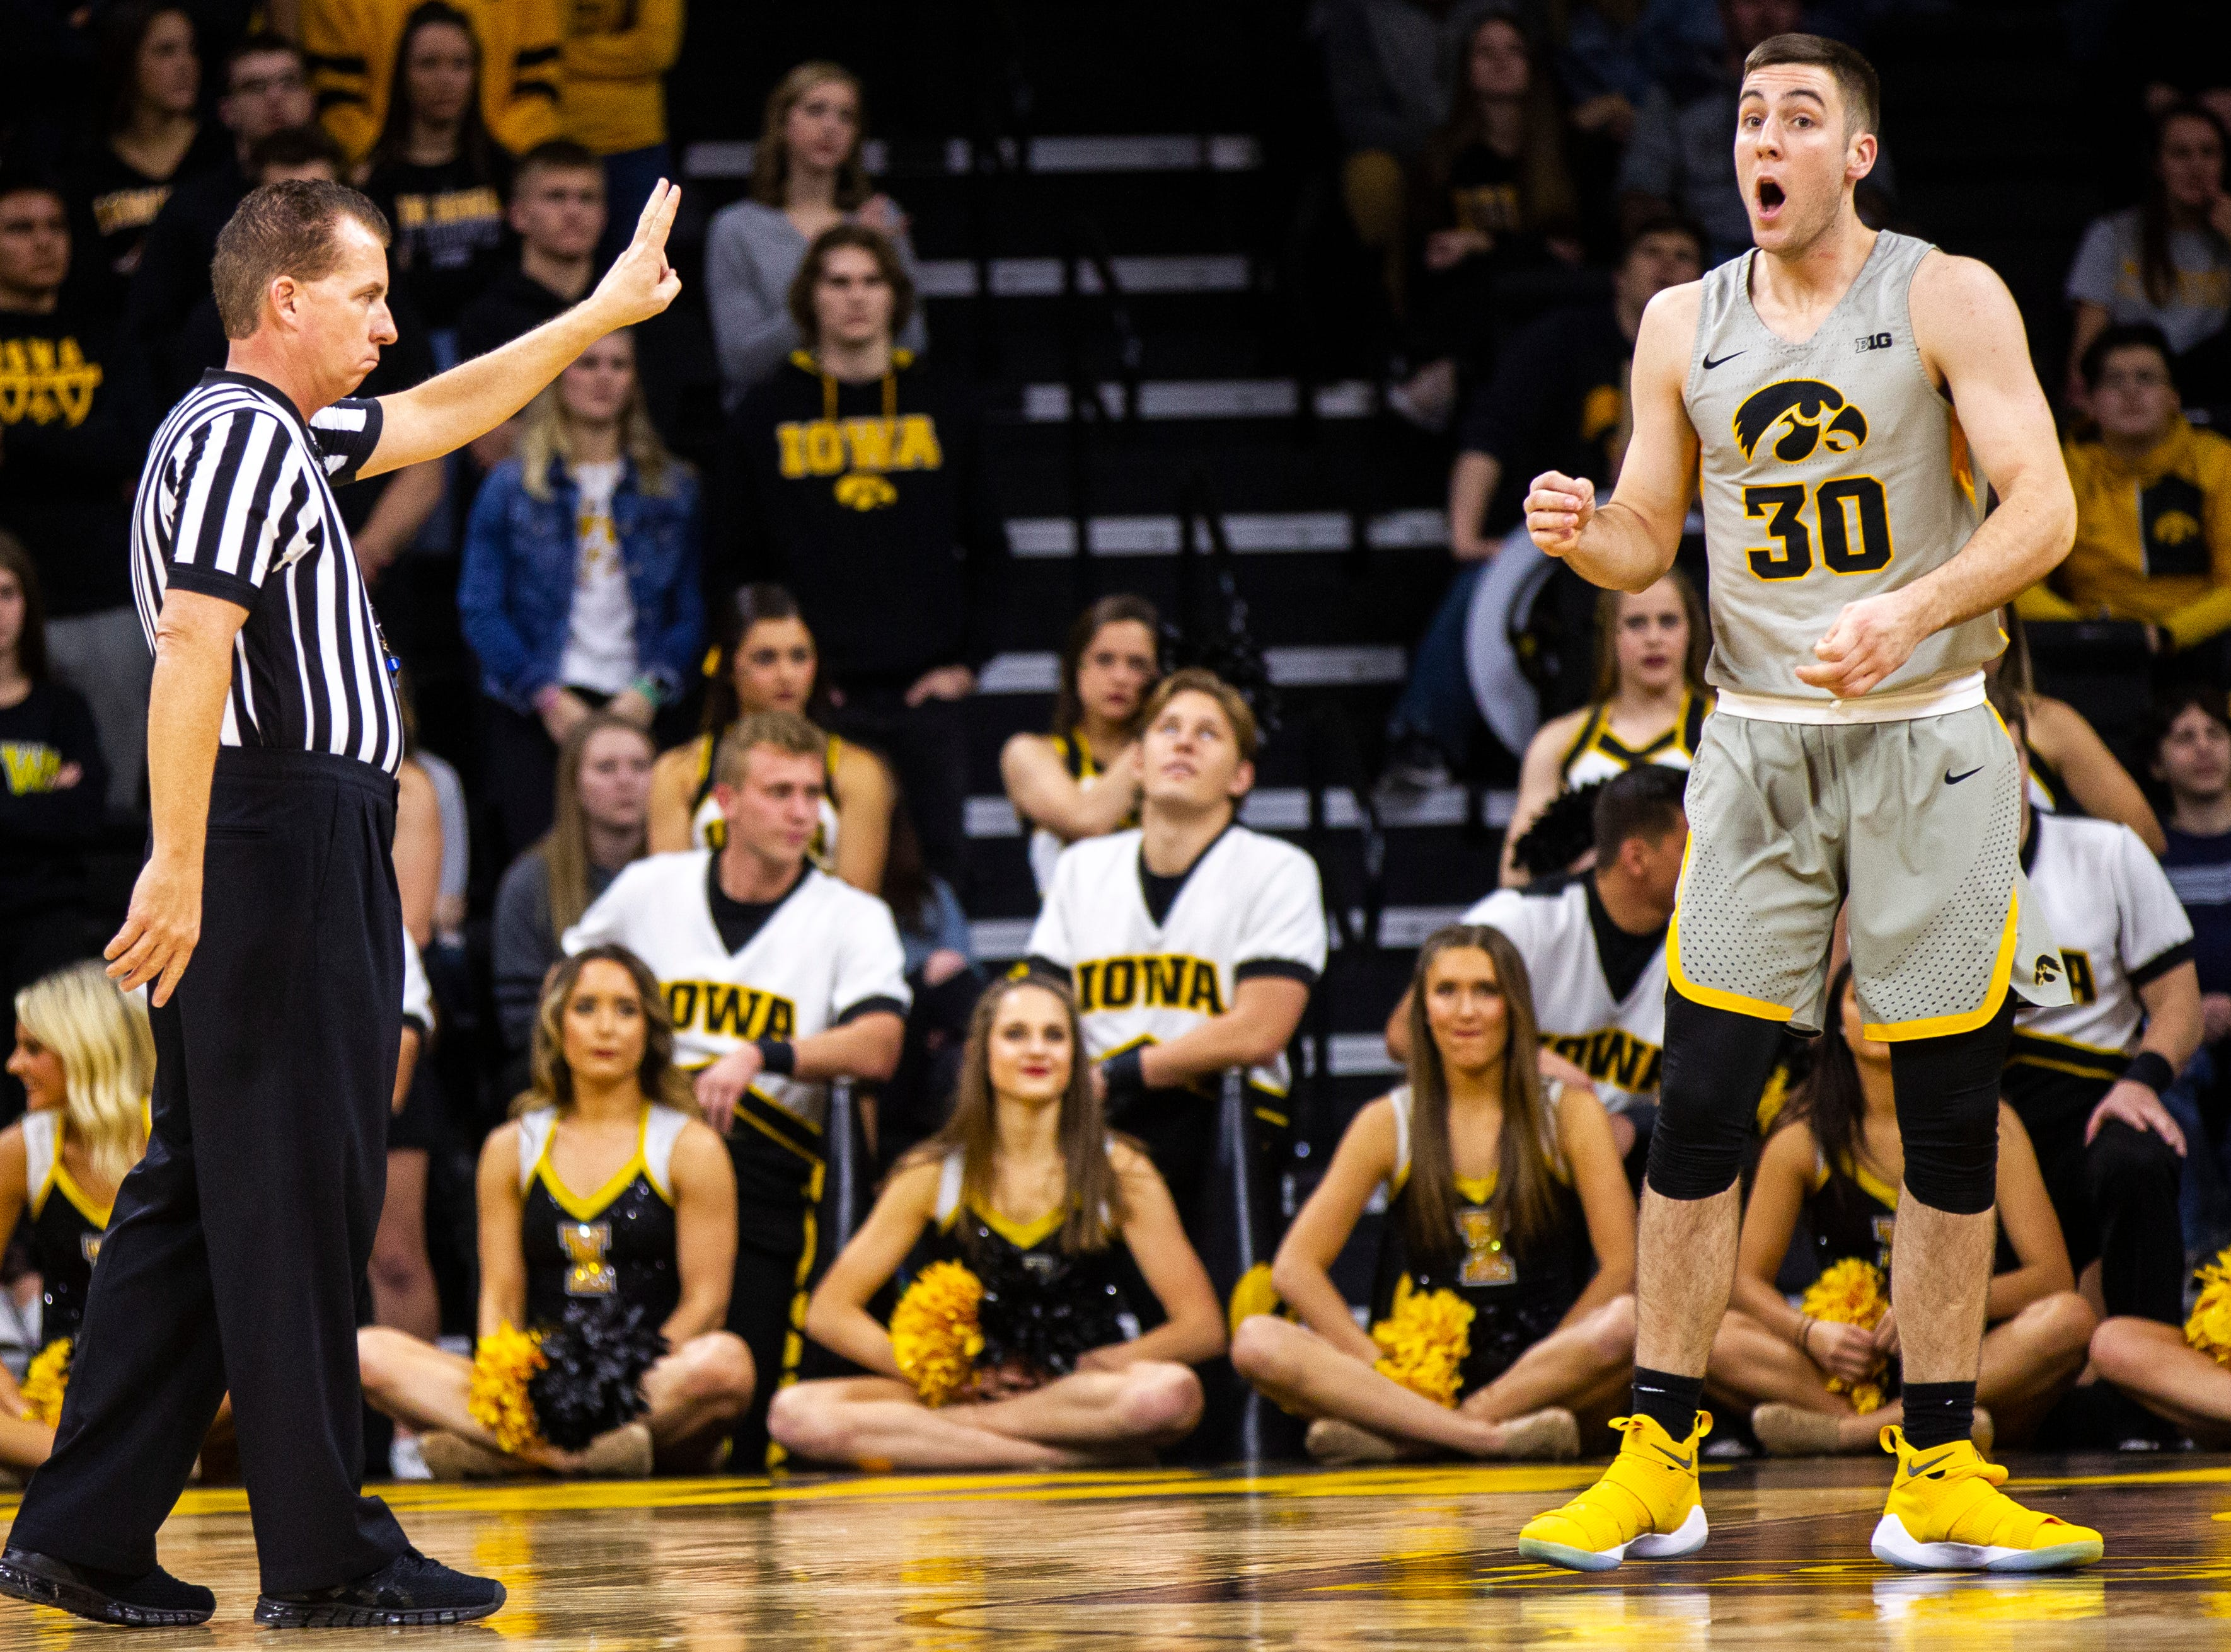 Iowa guard Connor McCaffery (30) reacts after being called four a foul during a NCAA Big Ten Conference men's basketball game on Sunday, Jan. 6, 2019, at the Carver-Hawkeye Arena in Iowa City, Iowa.